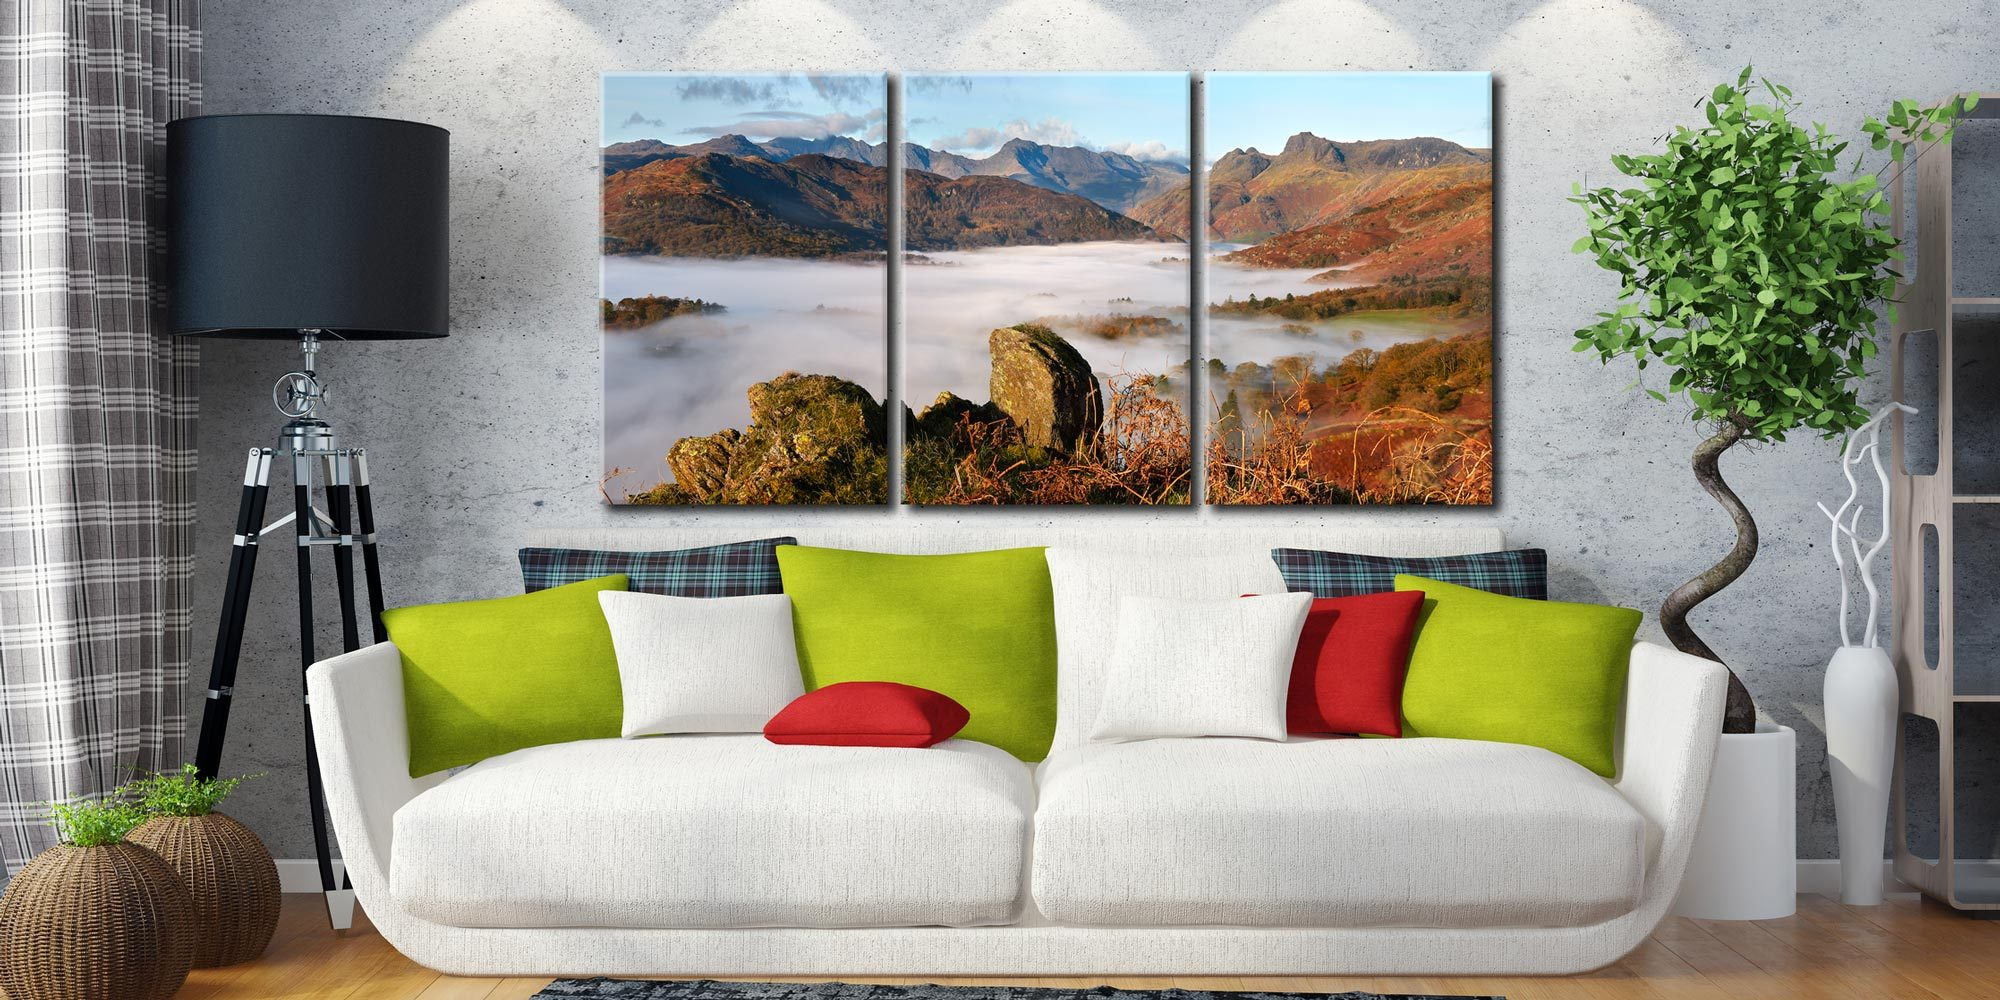 Langdale Valley Cloud Inversion - 3 Panel Canvas on Wall